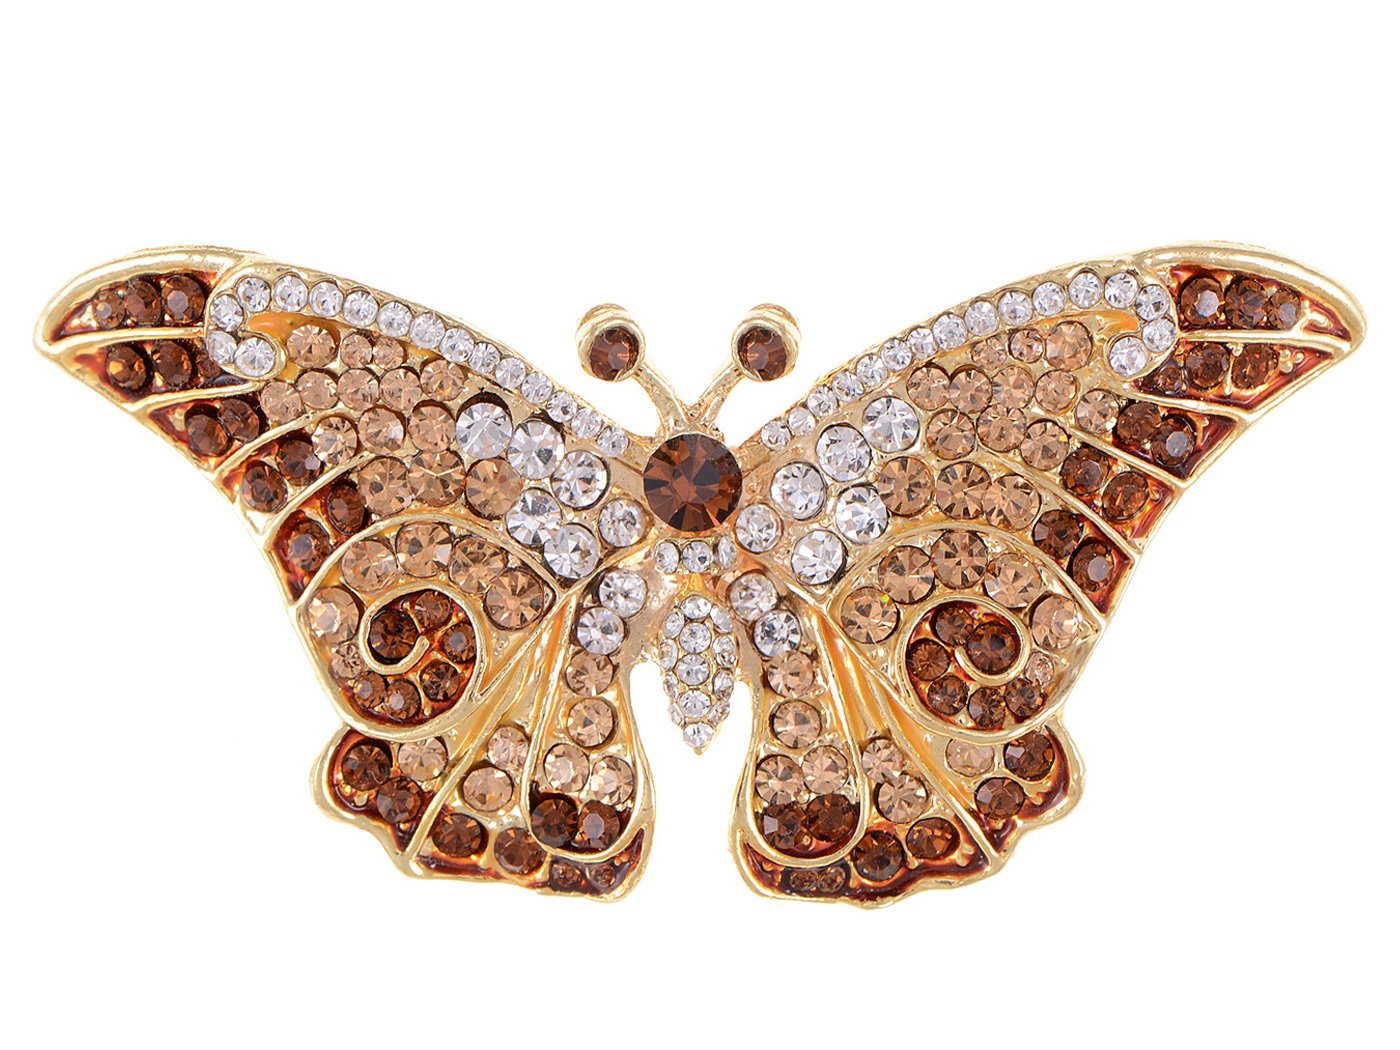 Empress Monarch Winged Butterfly Swarovski Crystal Rhinestones Brooch Pin - Purple, Green, Brown, Blue, Pink, or Black! Alilang 6B0024COFFBA